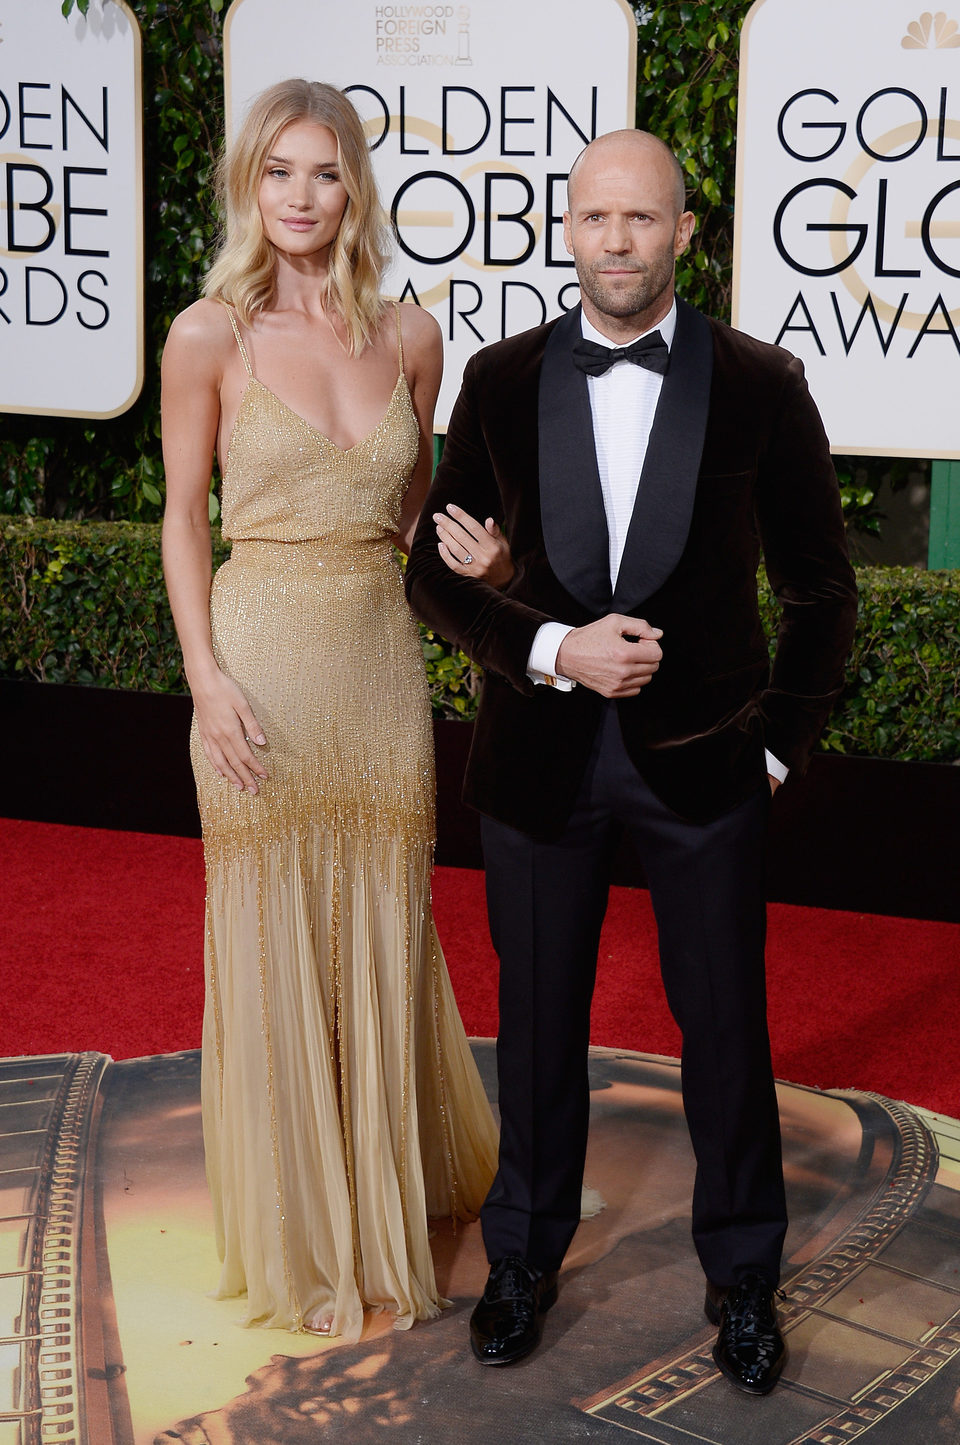 Jason Statham and Rosie Huntington-Whiteley at the 2016 Golden Globes red carpet